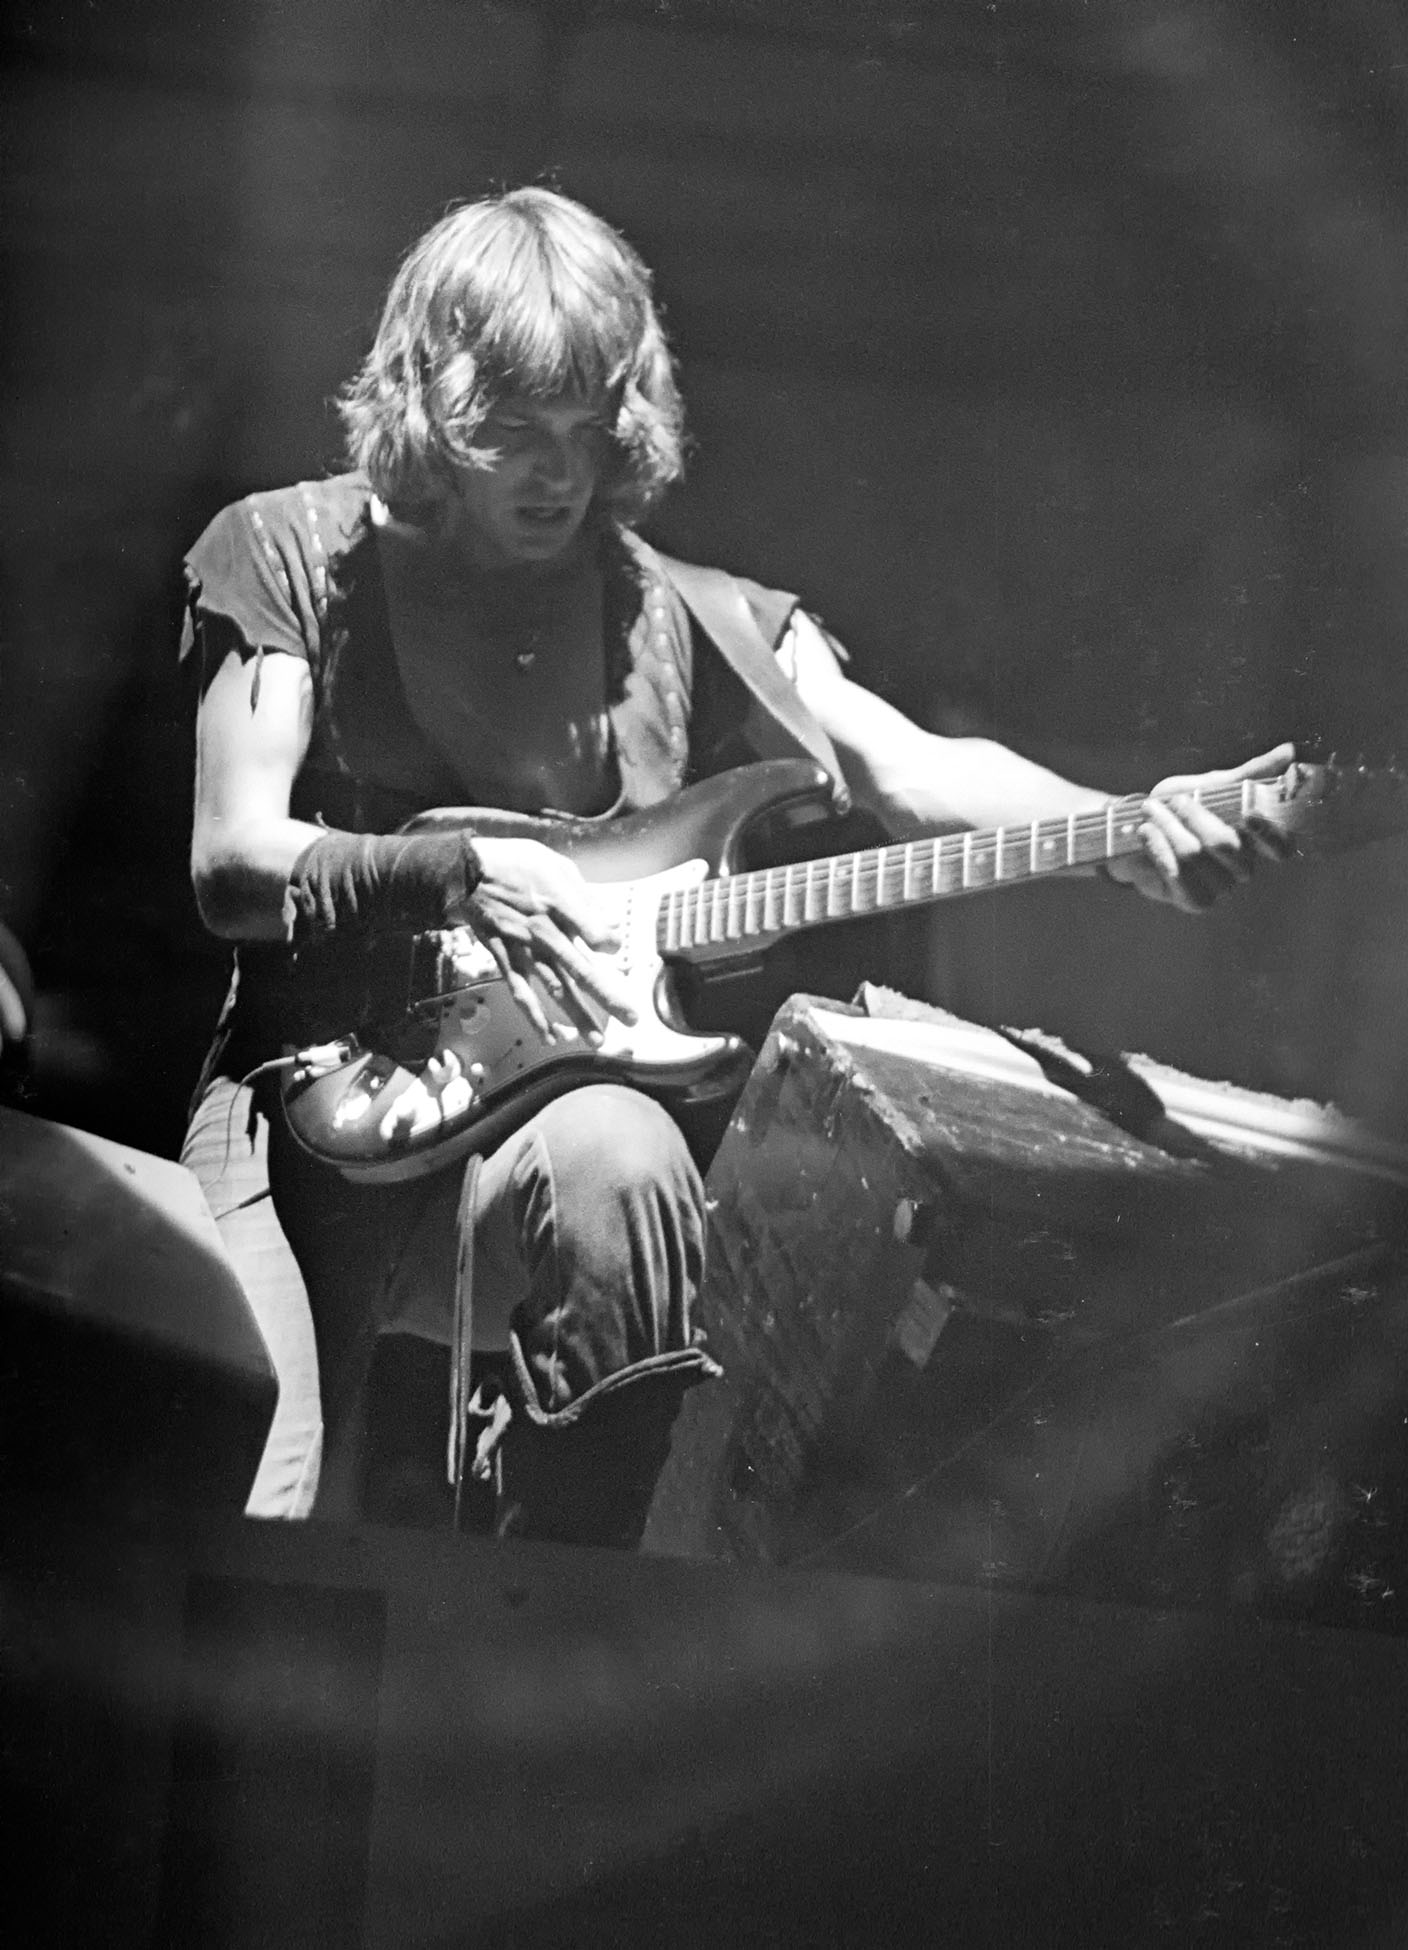 Roger Fisher of Heart at Central Park, New York City, August 22nd, 1977